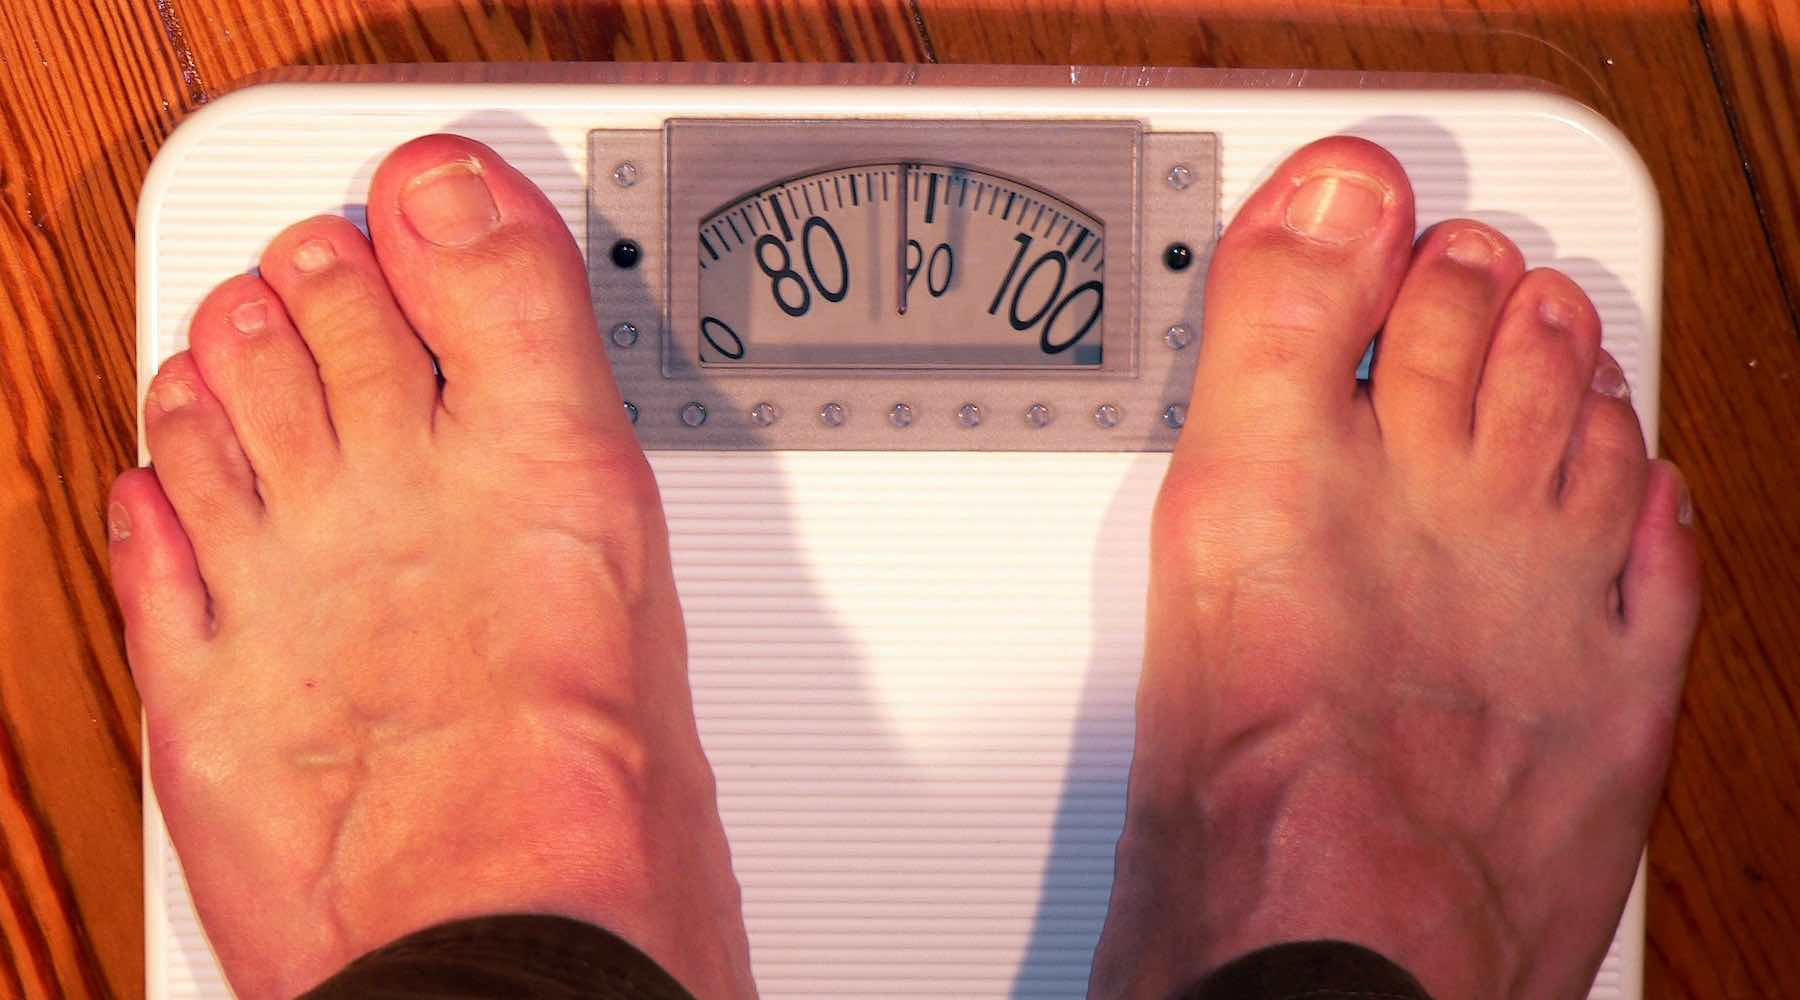 CDC: With Obesity Rising, Nearly Half of US Adults Now Obese